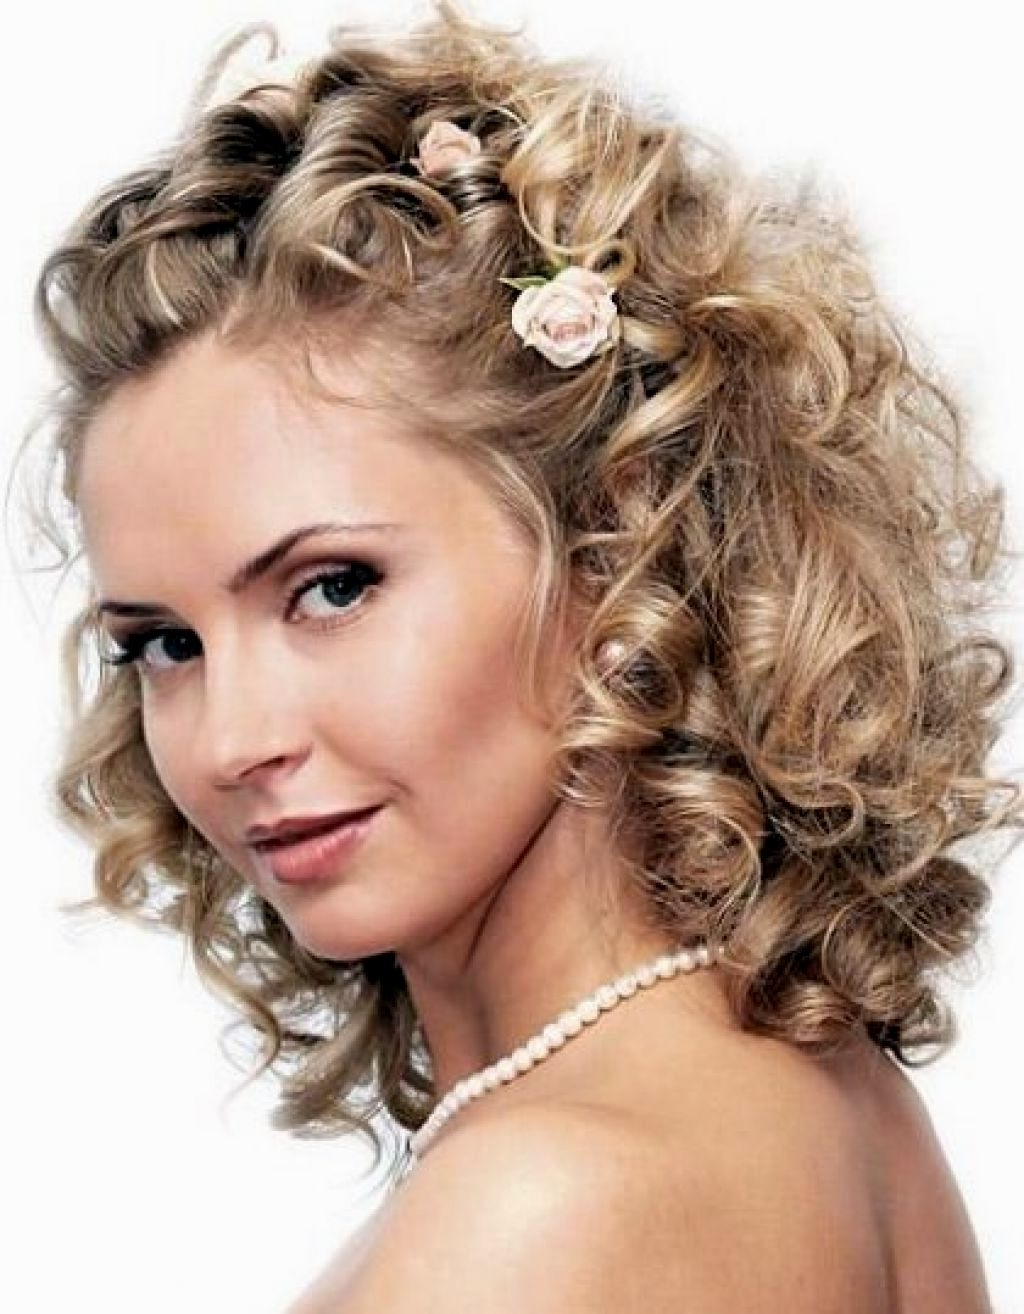 Bridalrstyles Medium Lengthr Wedding For With Veil Long And Headband Pertaining To Recent Wedding Hairstyles For Shoulder Length Black Hair (View 3 of 15)